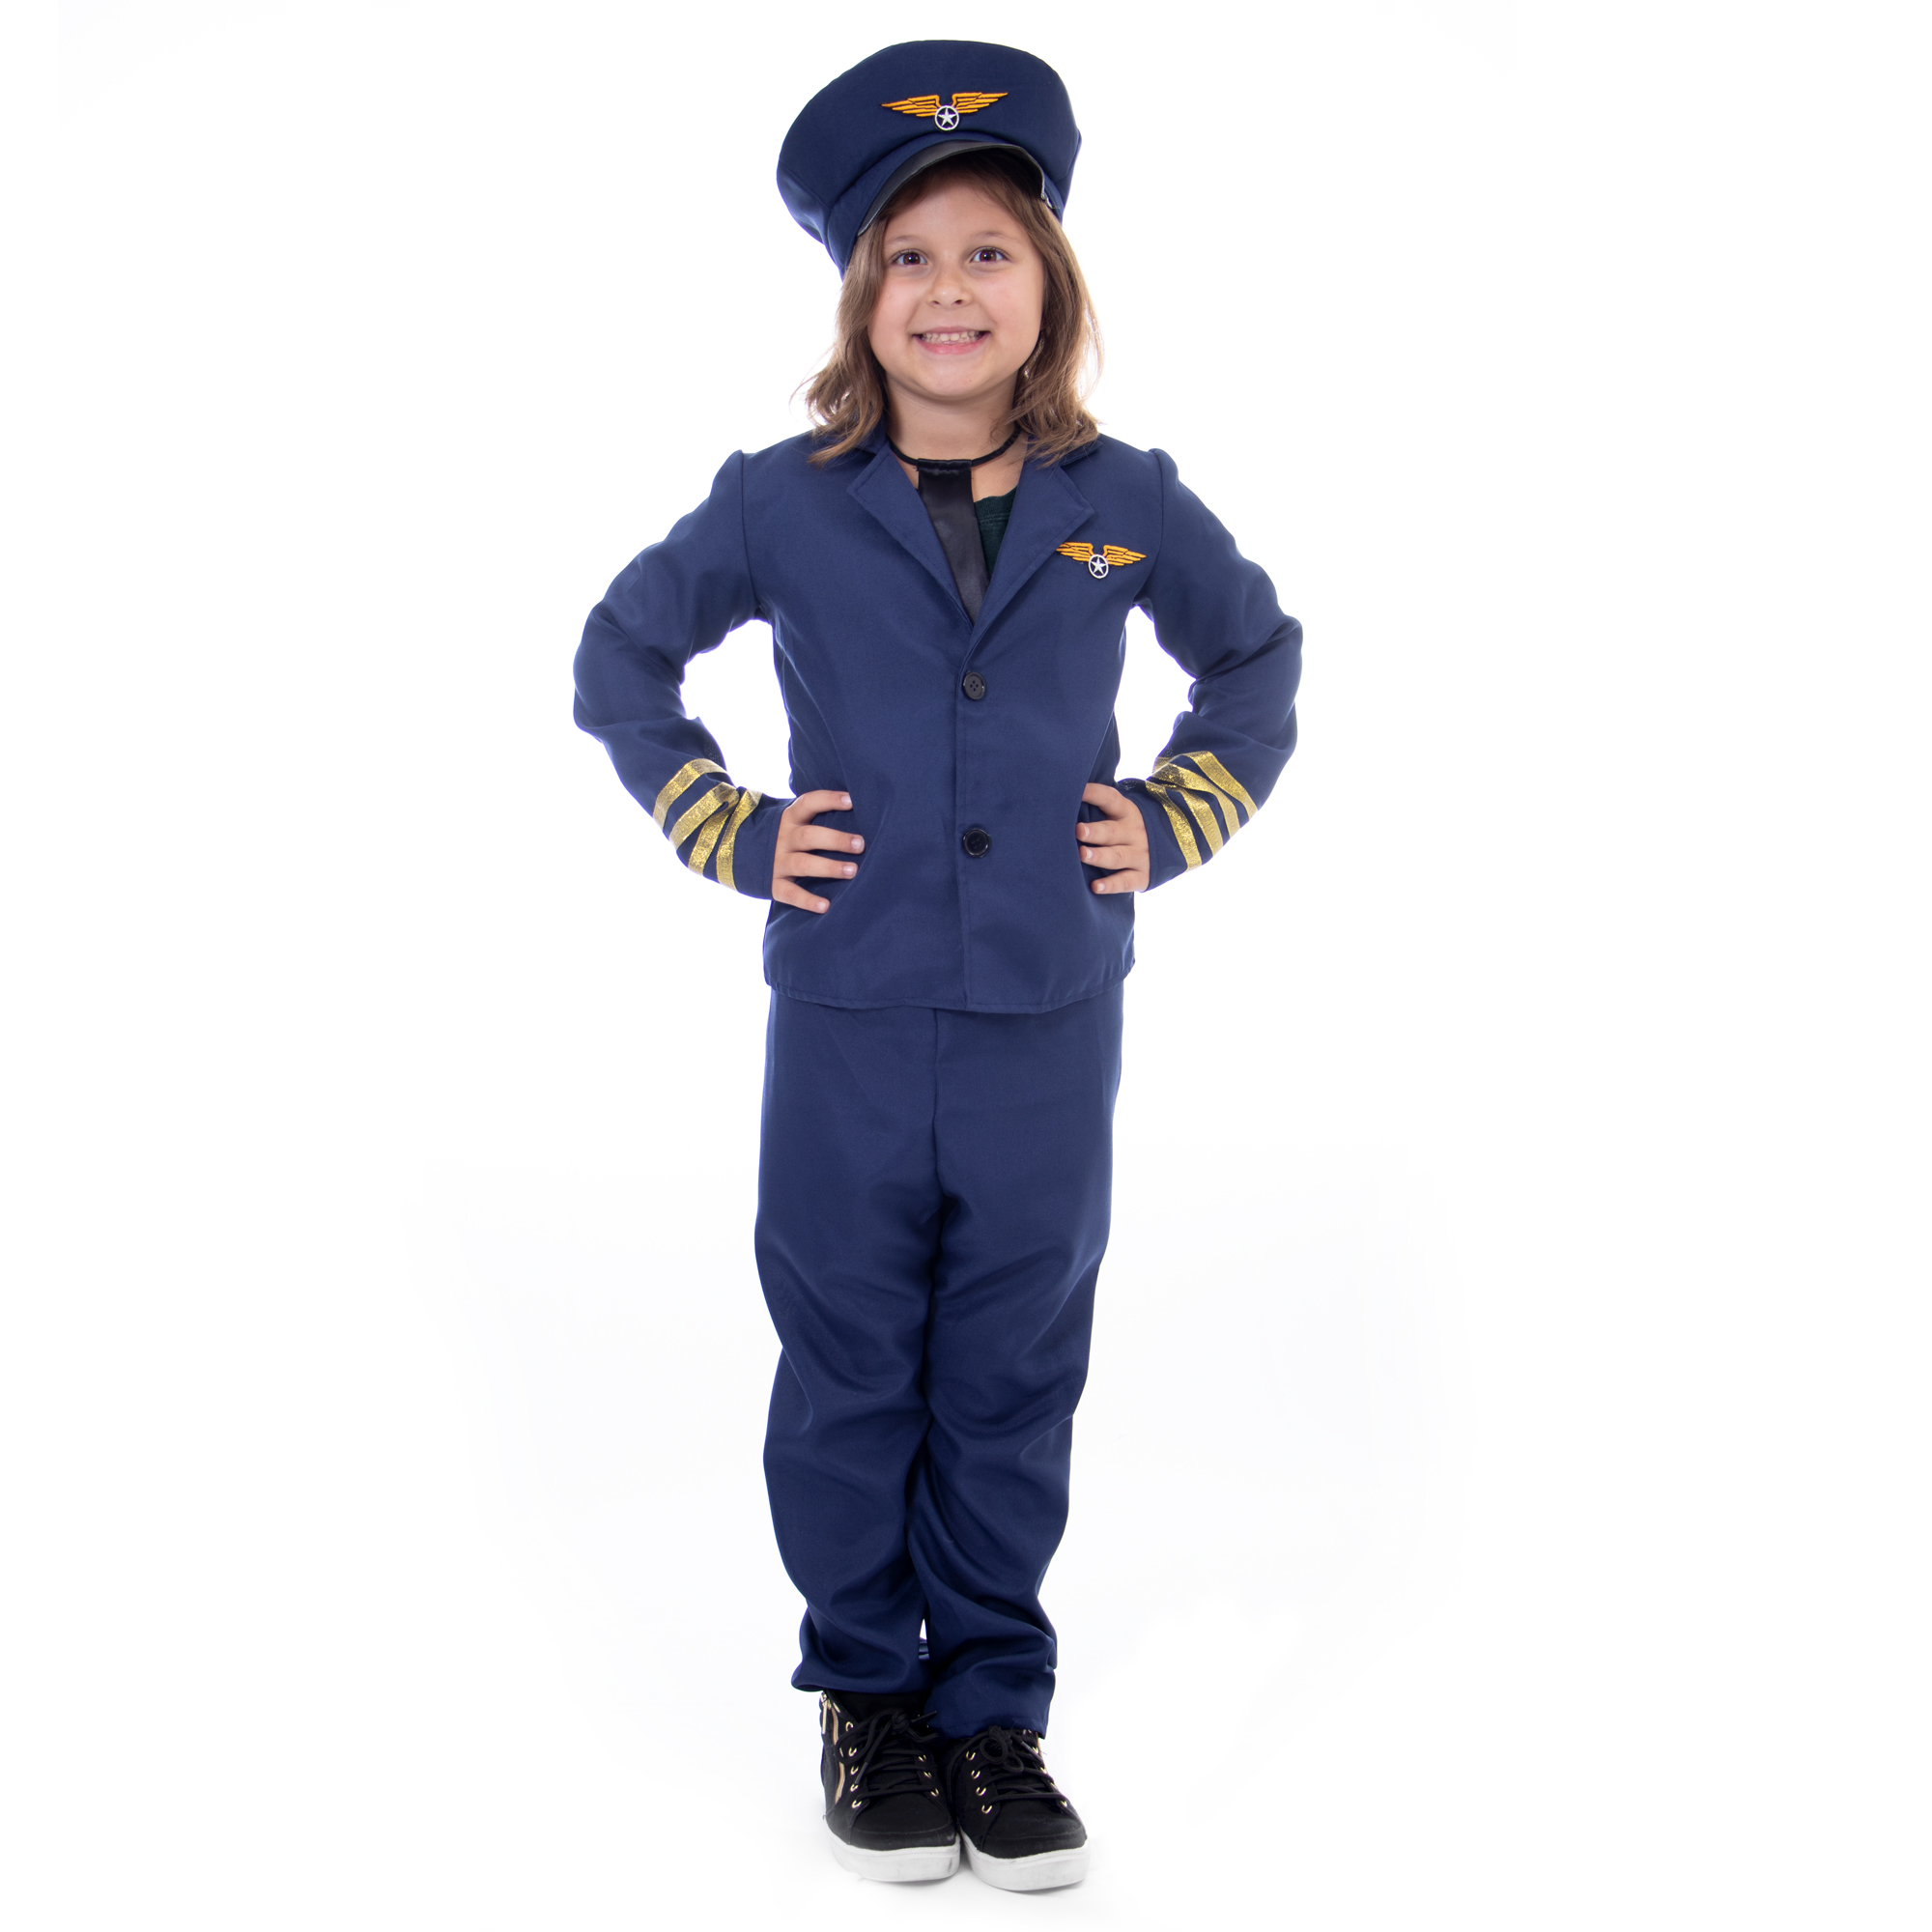 Airline Pilot Halloween Costume - Kids Unisex, Small